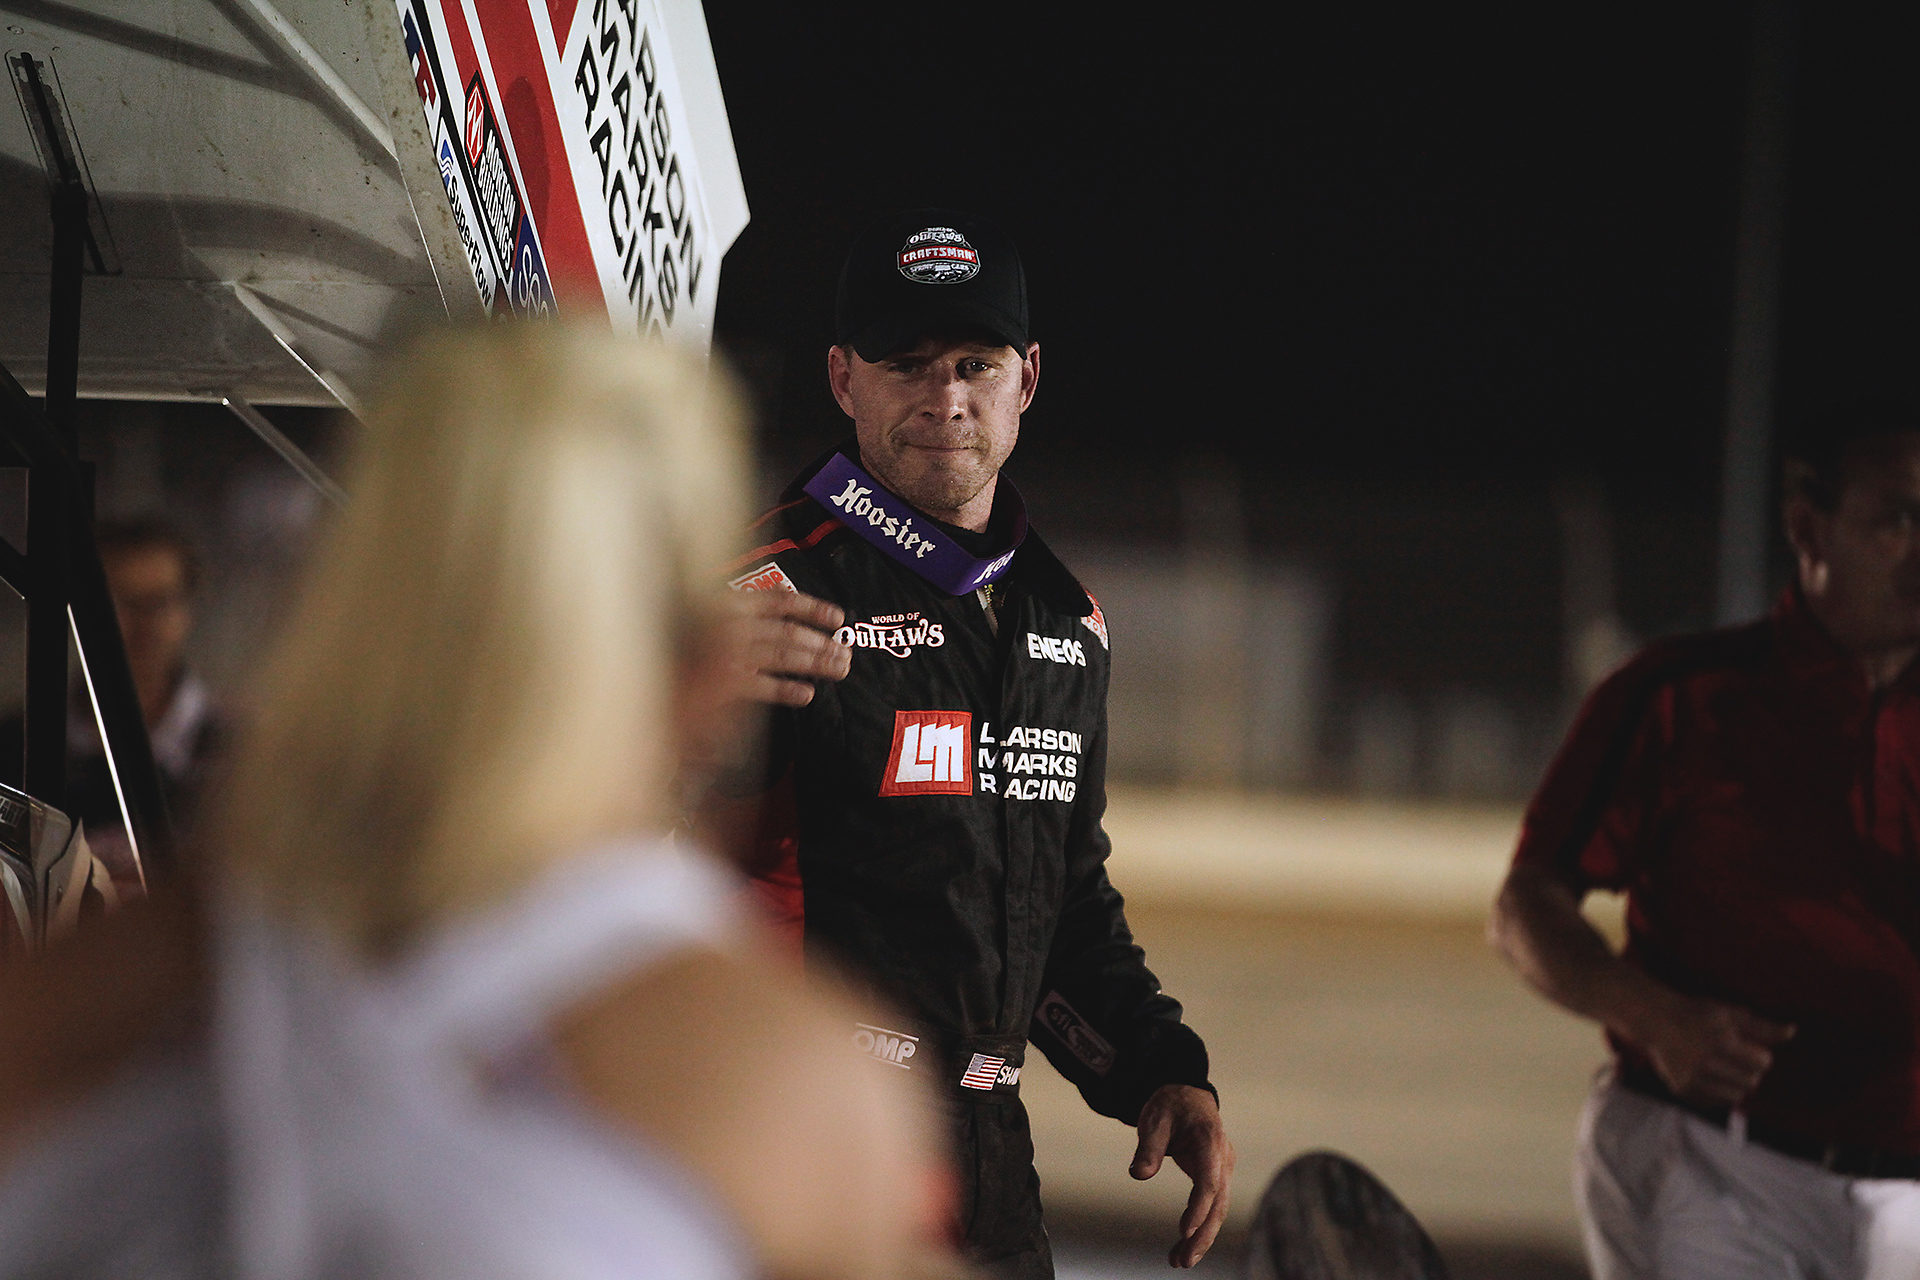 Shane Stewart welcomes his family to join him in victory circle after winning The World of Outlaws series race at Lawrenceburg Speedway, IN. ( Jeffrey Turford / TDP )